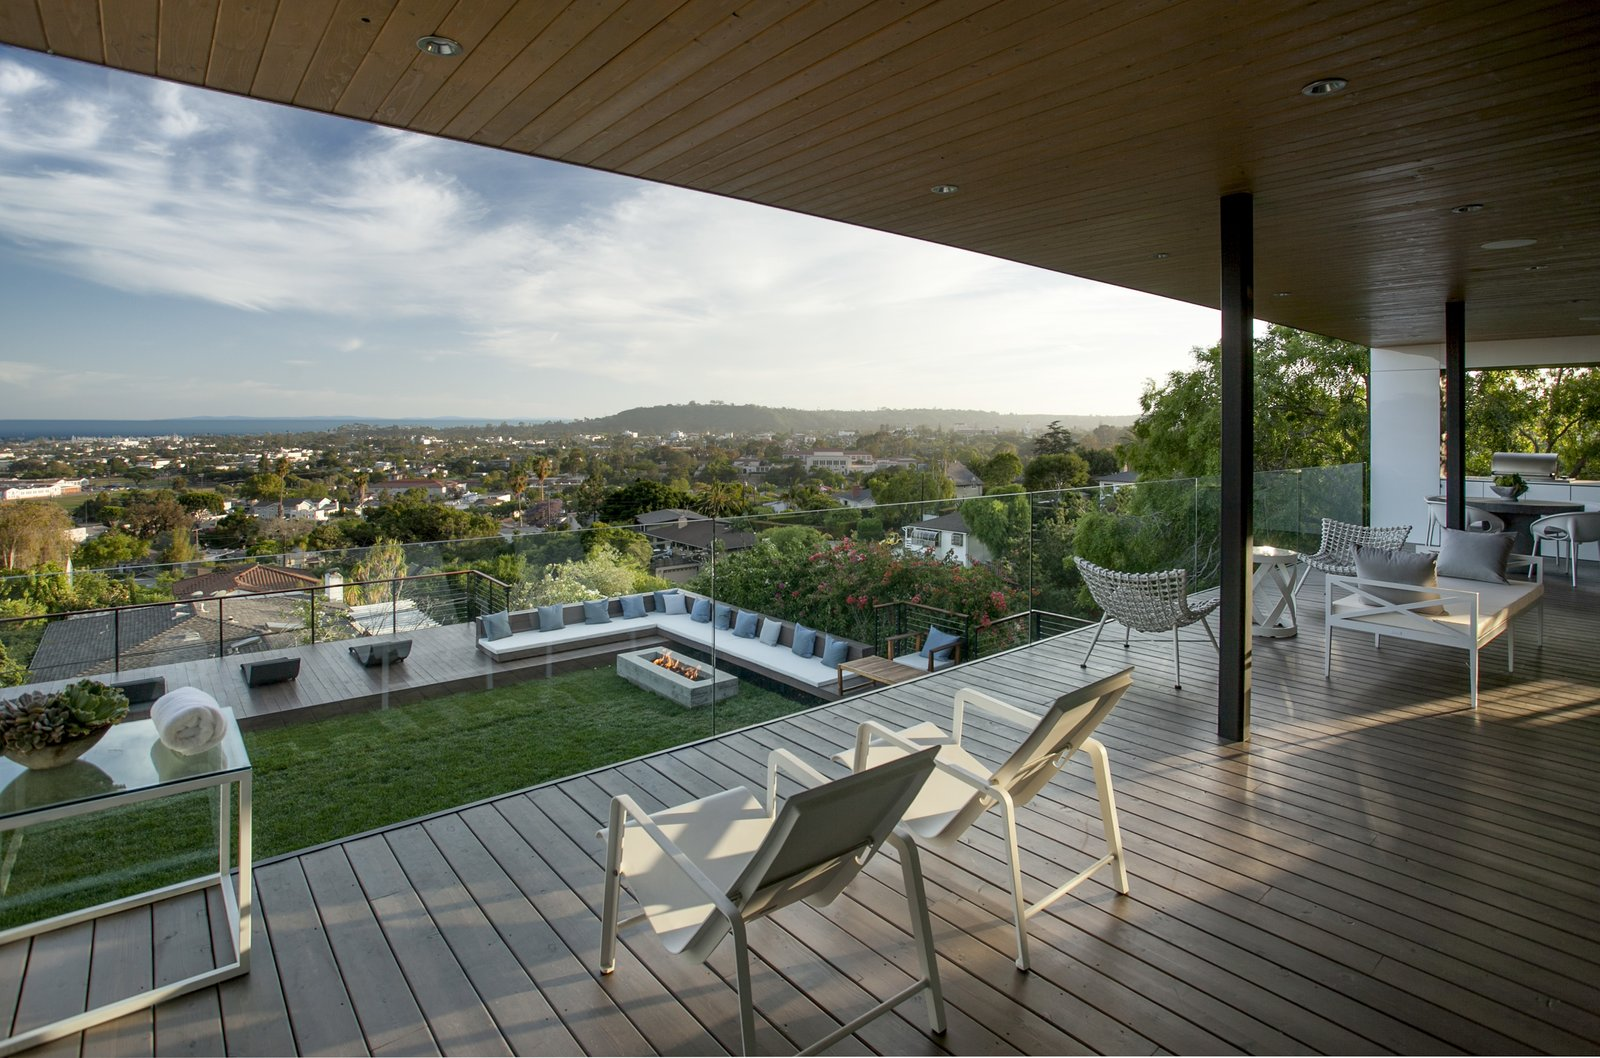 Outdoor, Grass, Large Patio, Porch, Deck, and Wood Patio, Porch, Deck  Paseo Ferrelo